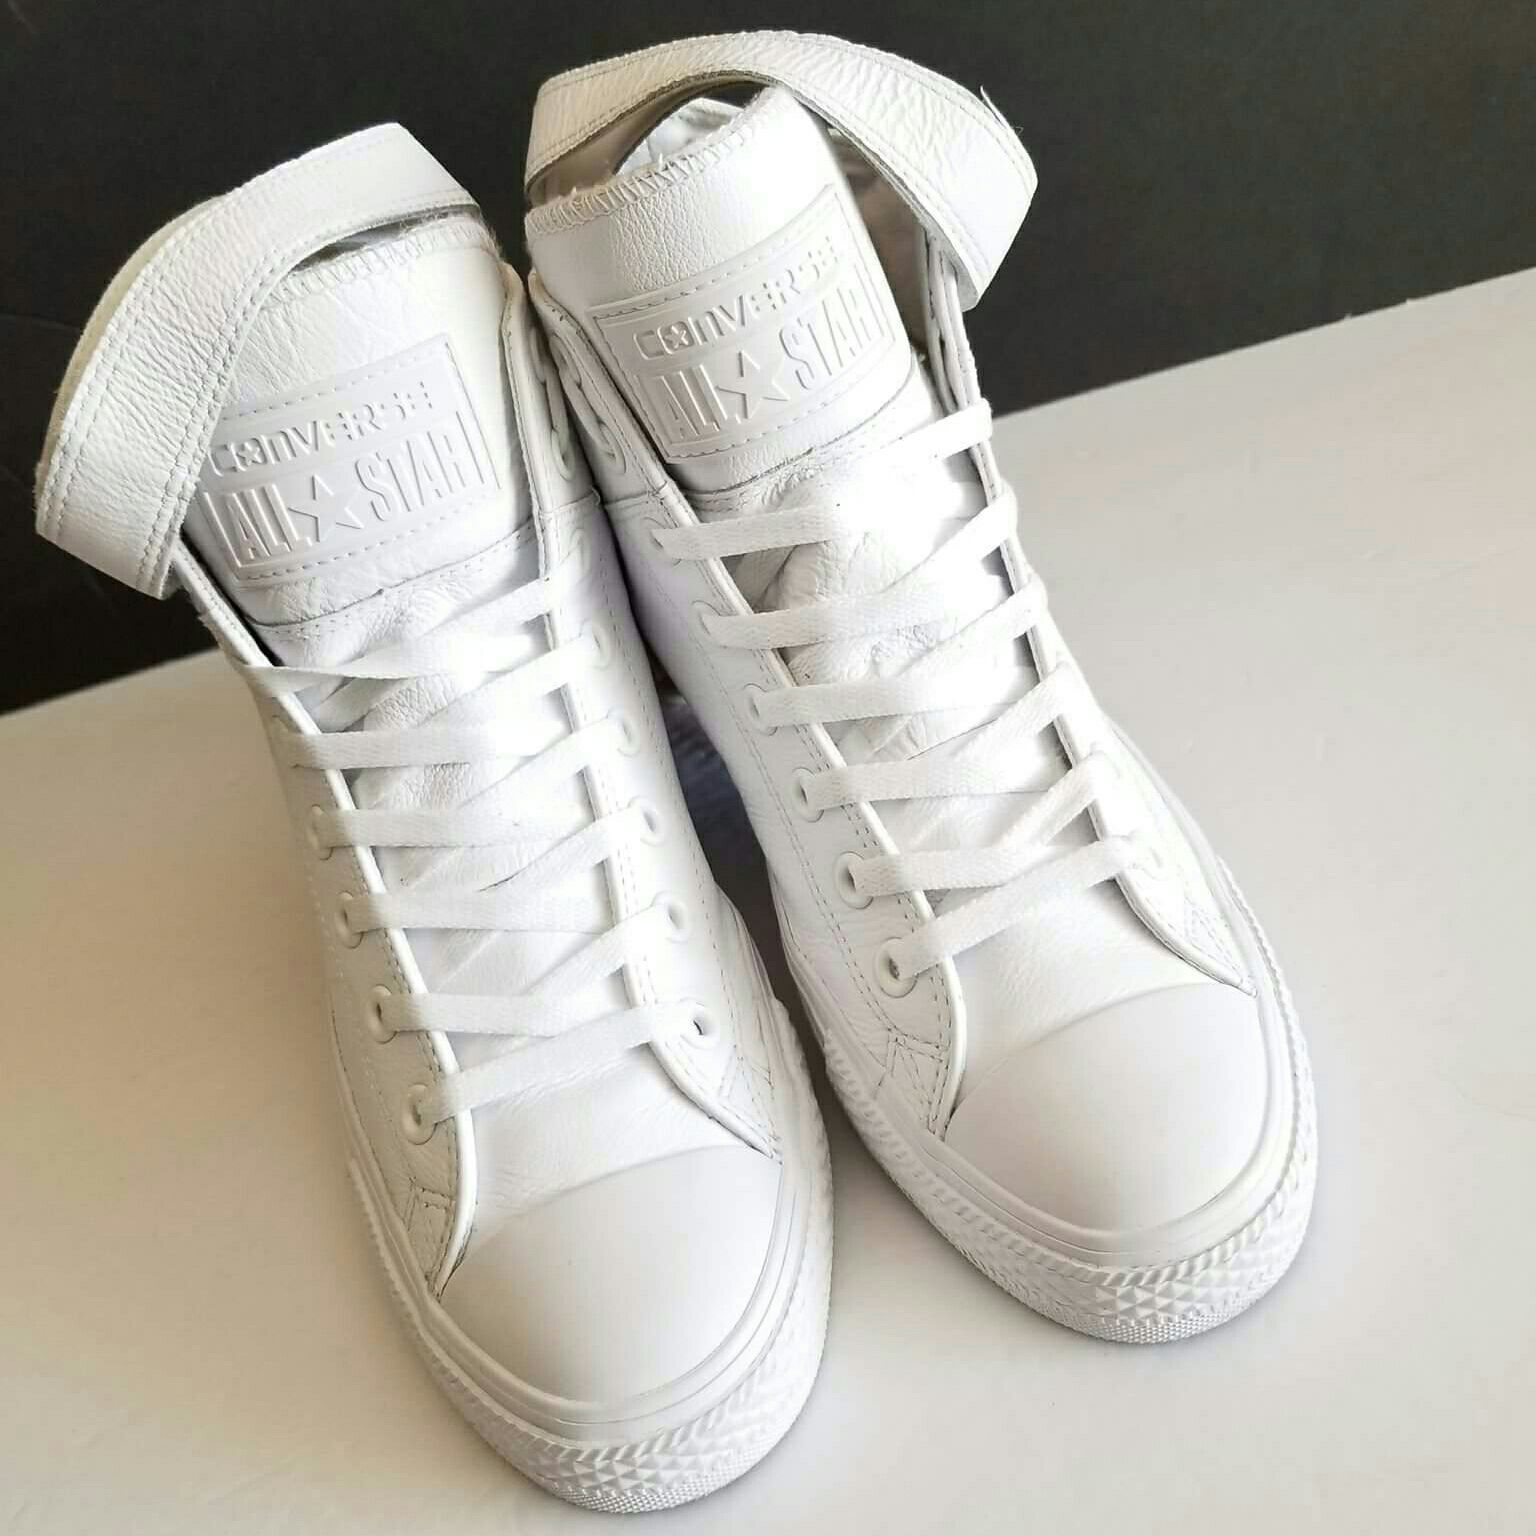 061e4223083 Converse All White Leather High Tops Super cool high top kicks with a Velcro  strap! Super fashionable Women s Size 10 Men s Size 8 In Very Good  condition!